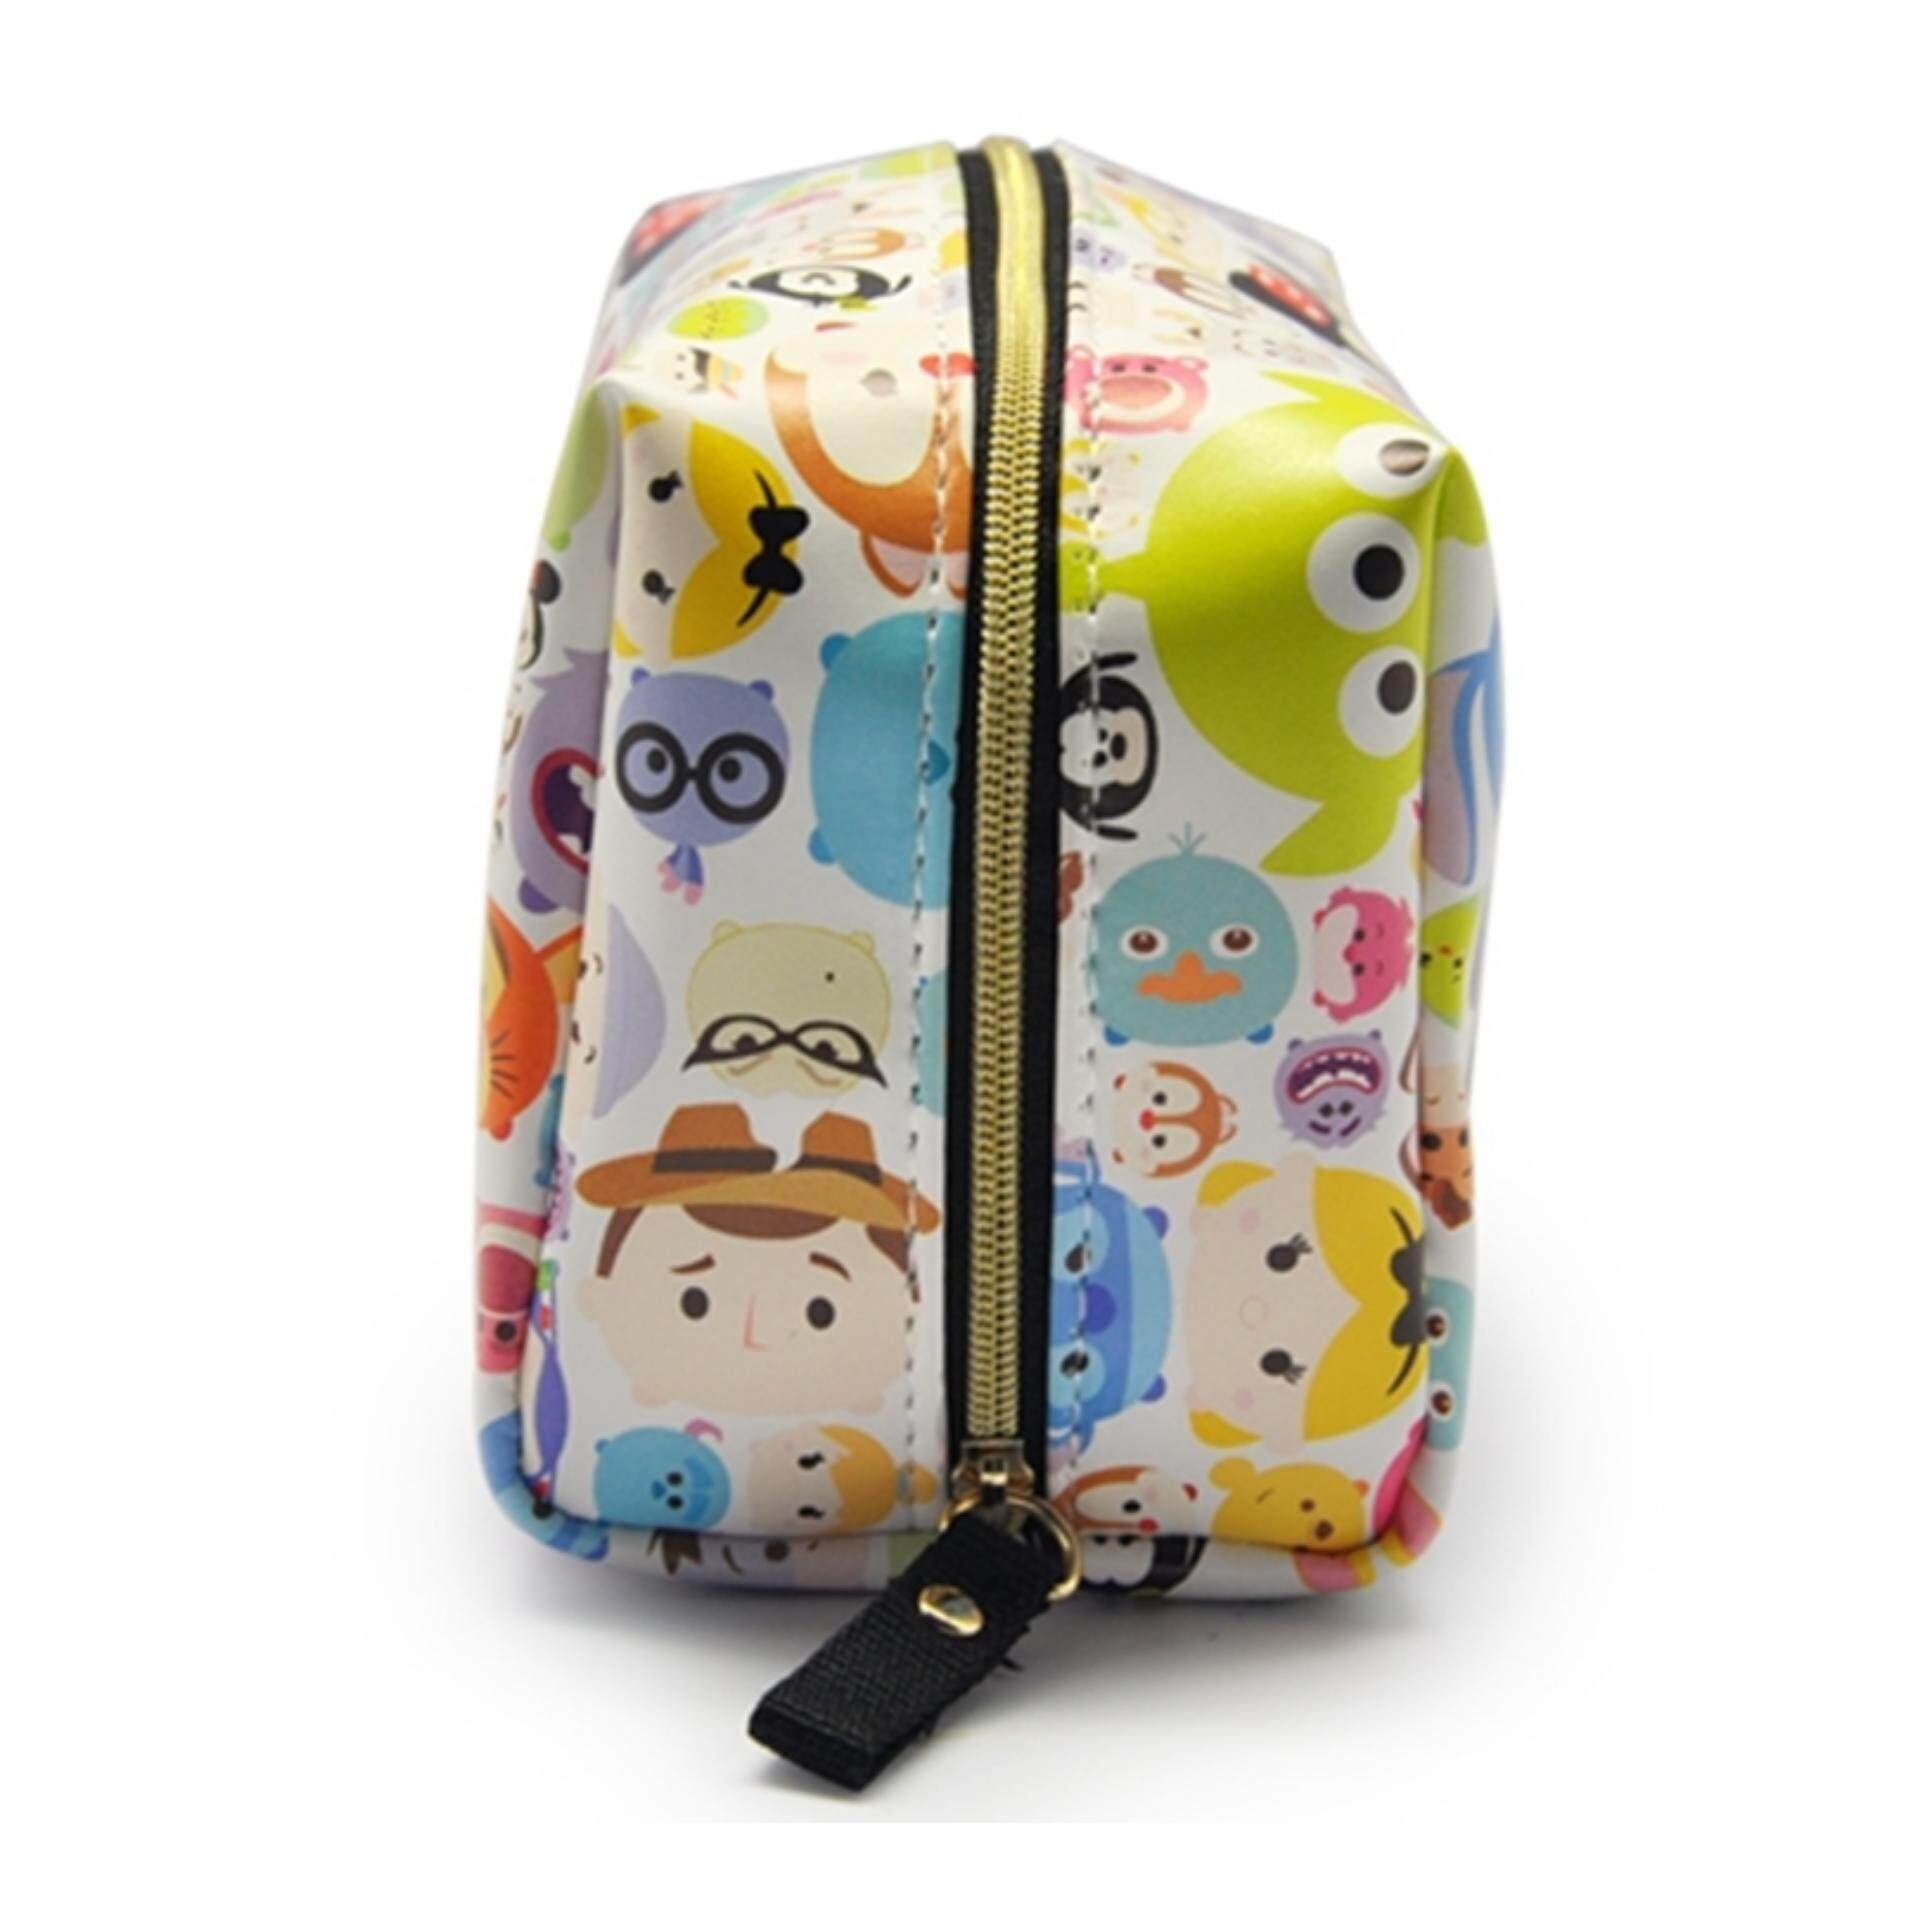 Disney Tsum Tsum Square Pouch Bag - White Colour